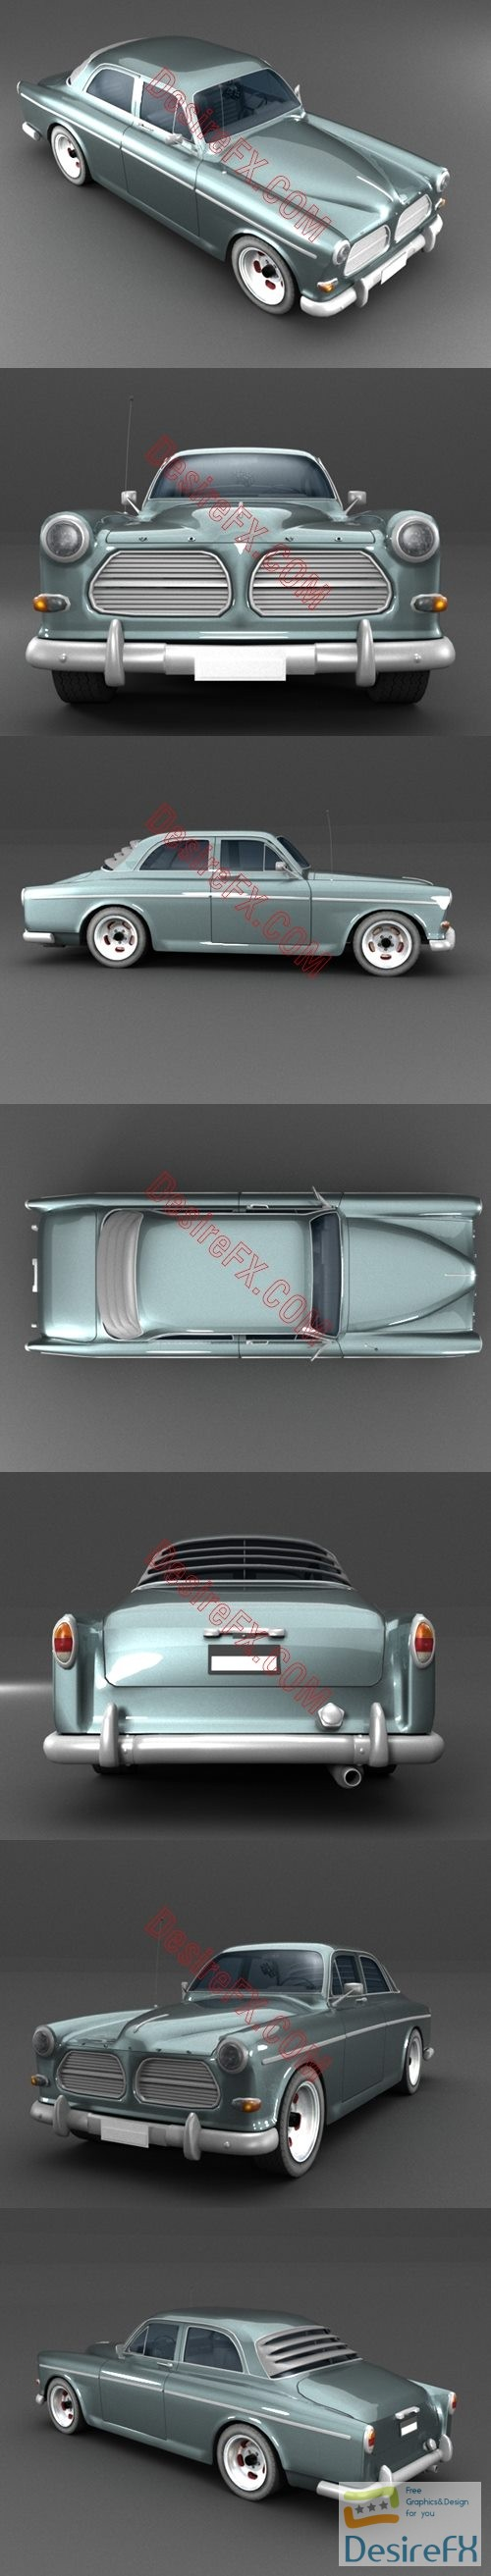 3d-models - Volvo Amazon 3D Model